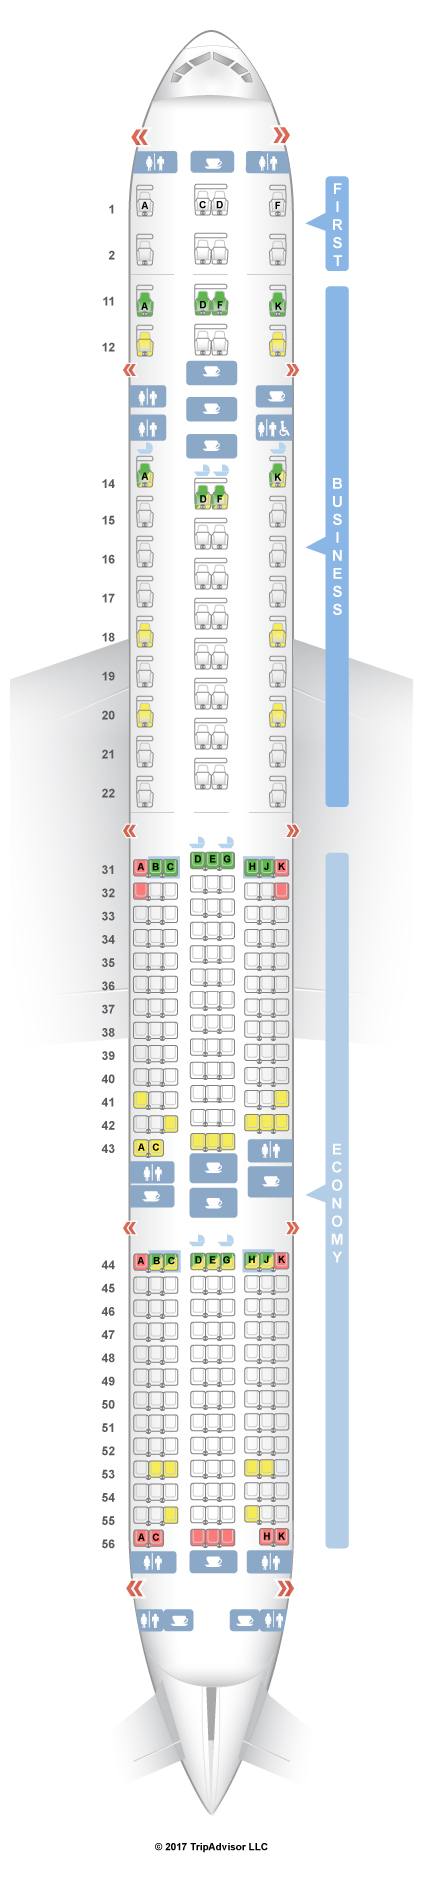 American Airlines Boeing 777 300 Seat Map - Best Seat 2018 on